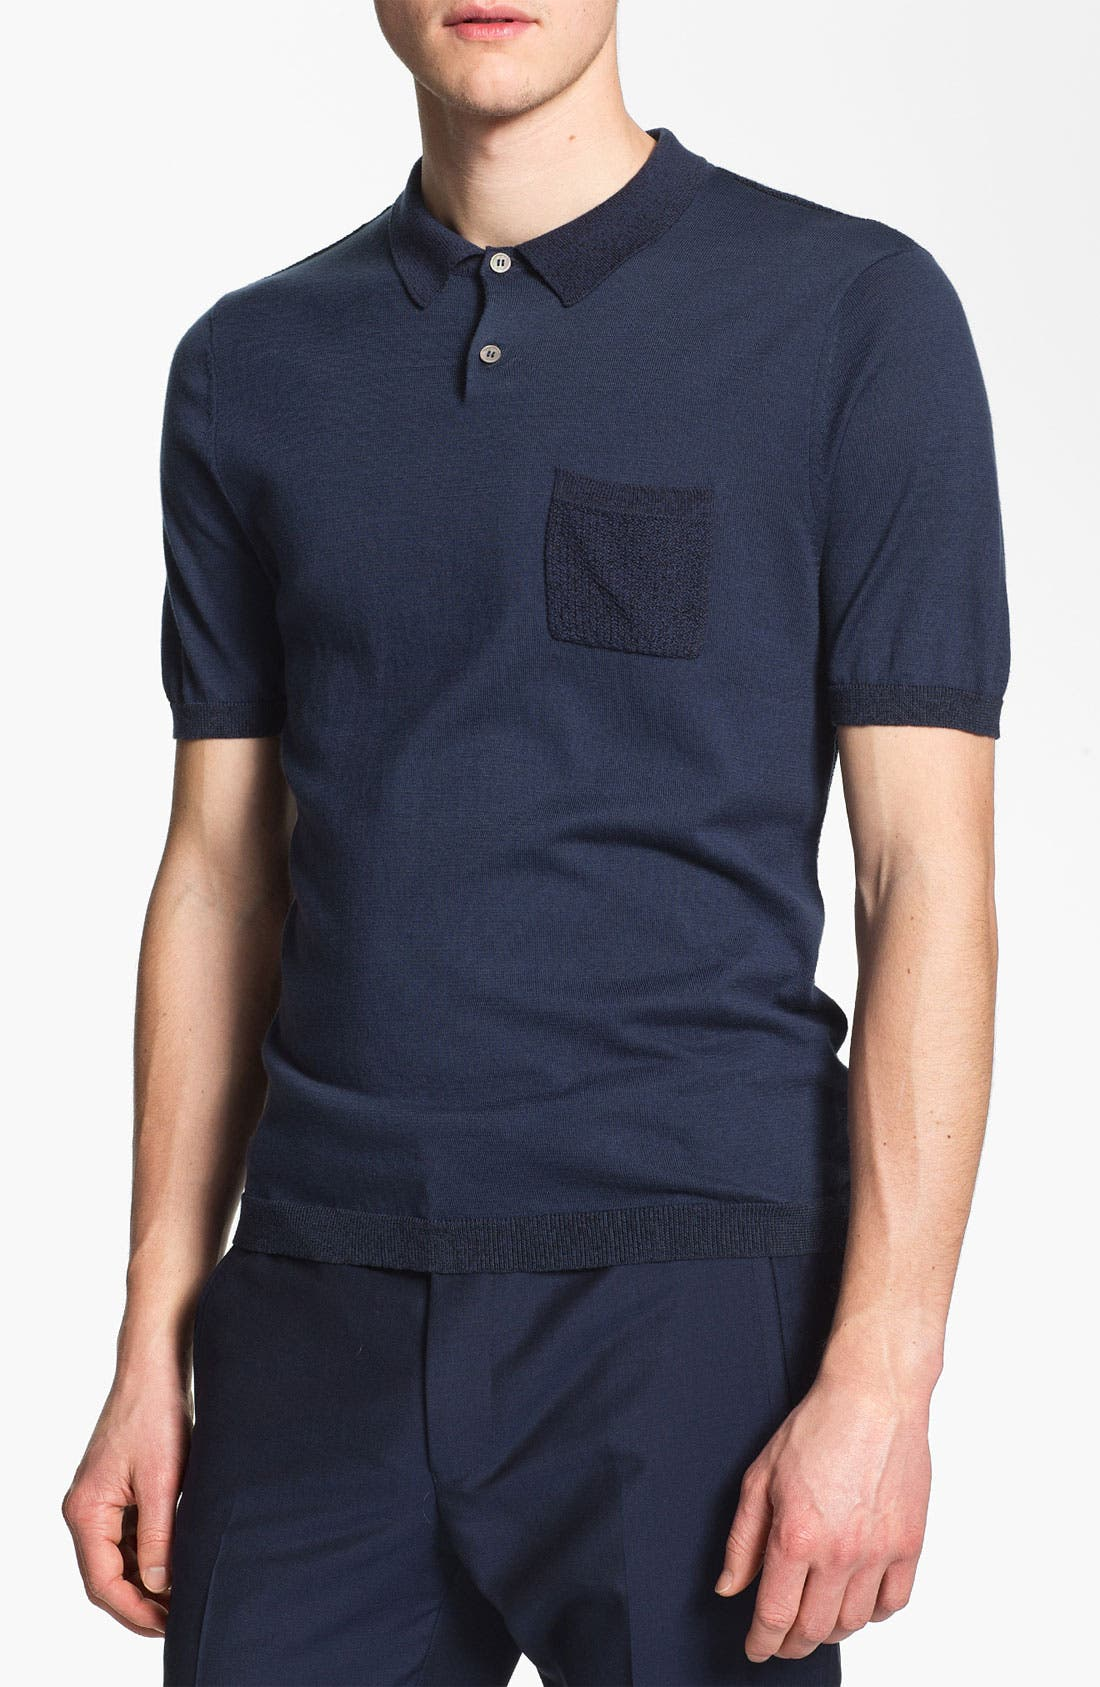 Alternate Image 1 Selected - Topman 'Lux Collection' Mesh Knit Cotton Polo